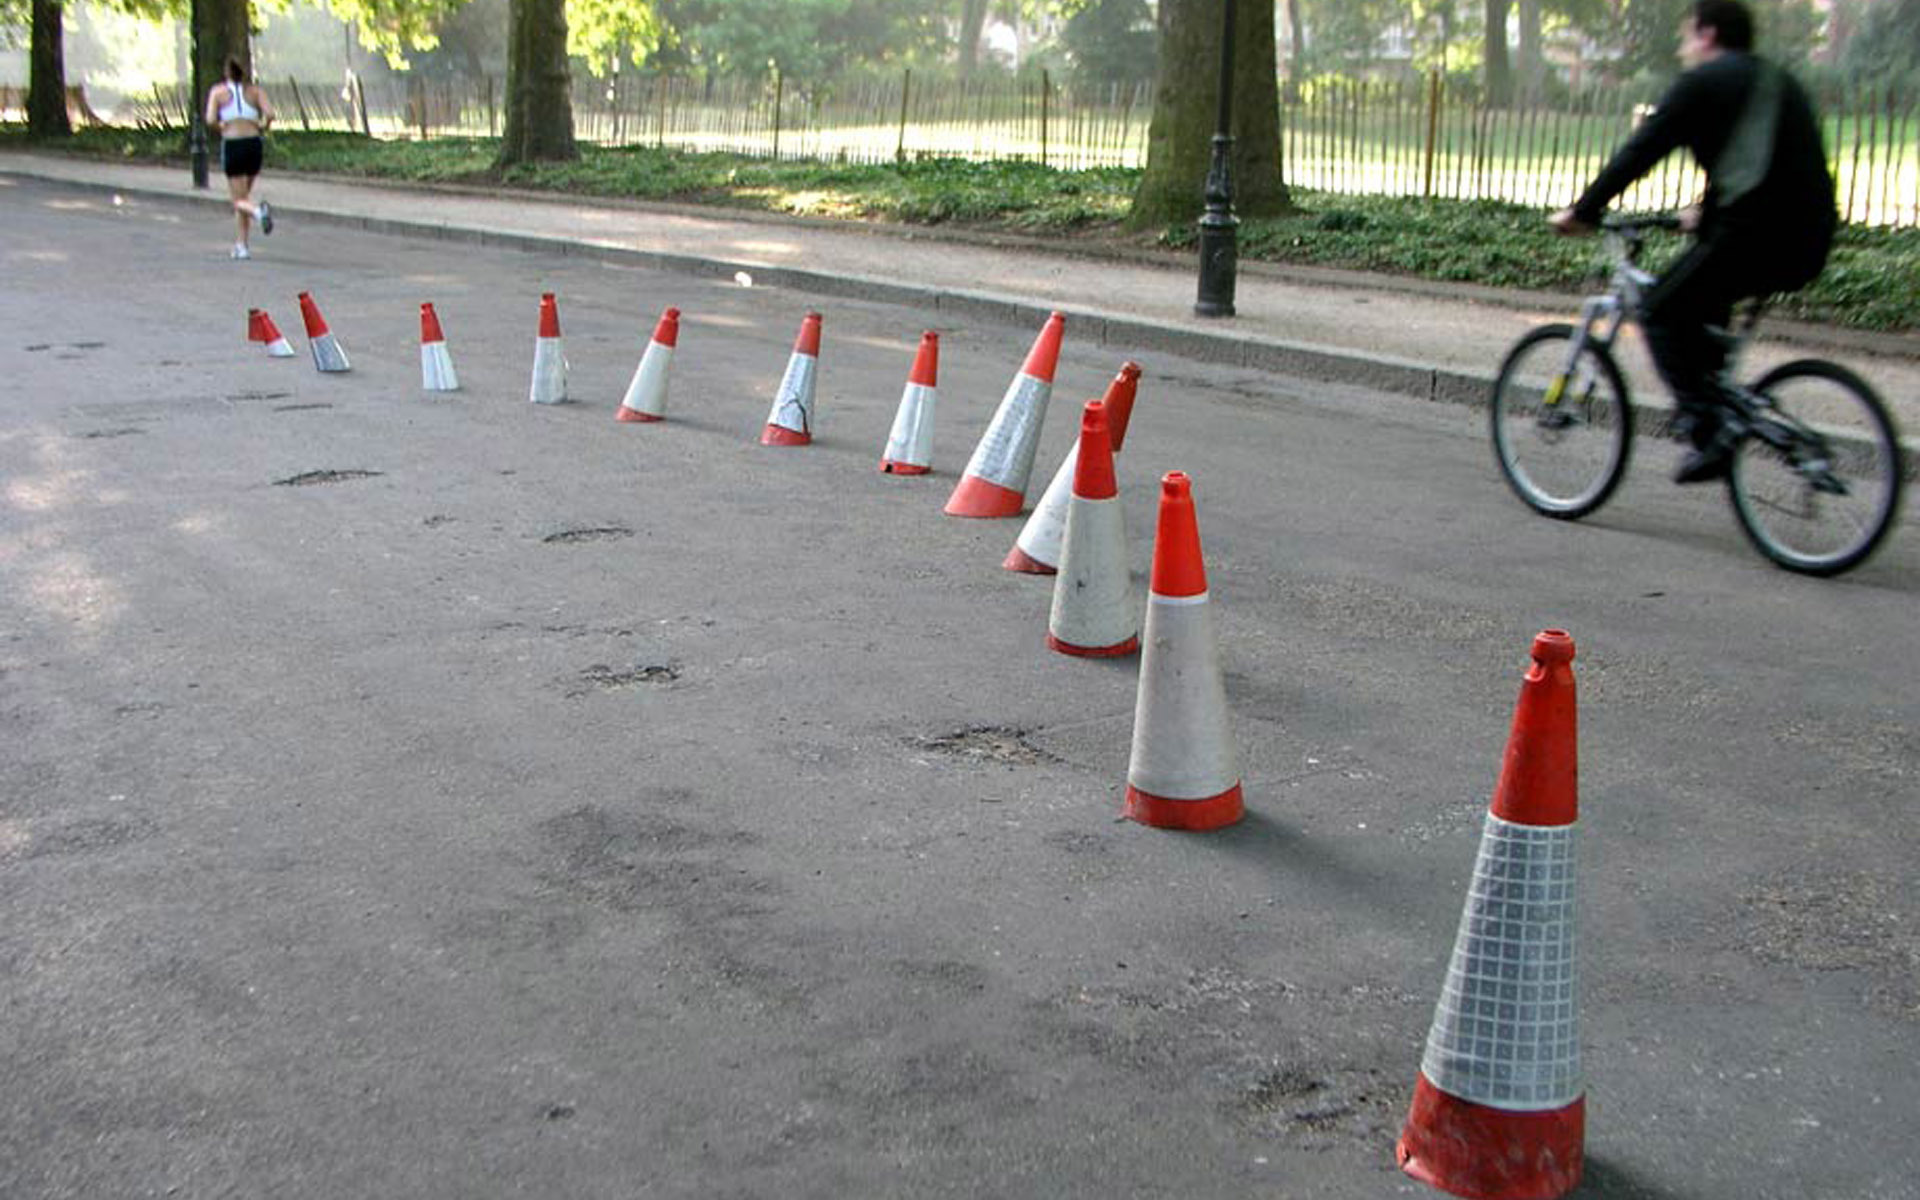 Bicycles roads traffic cones